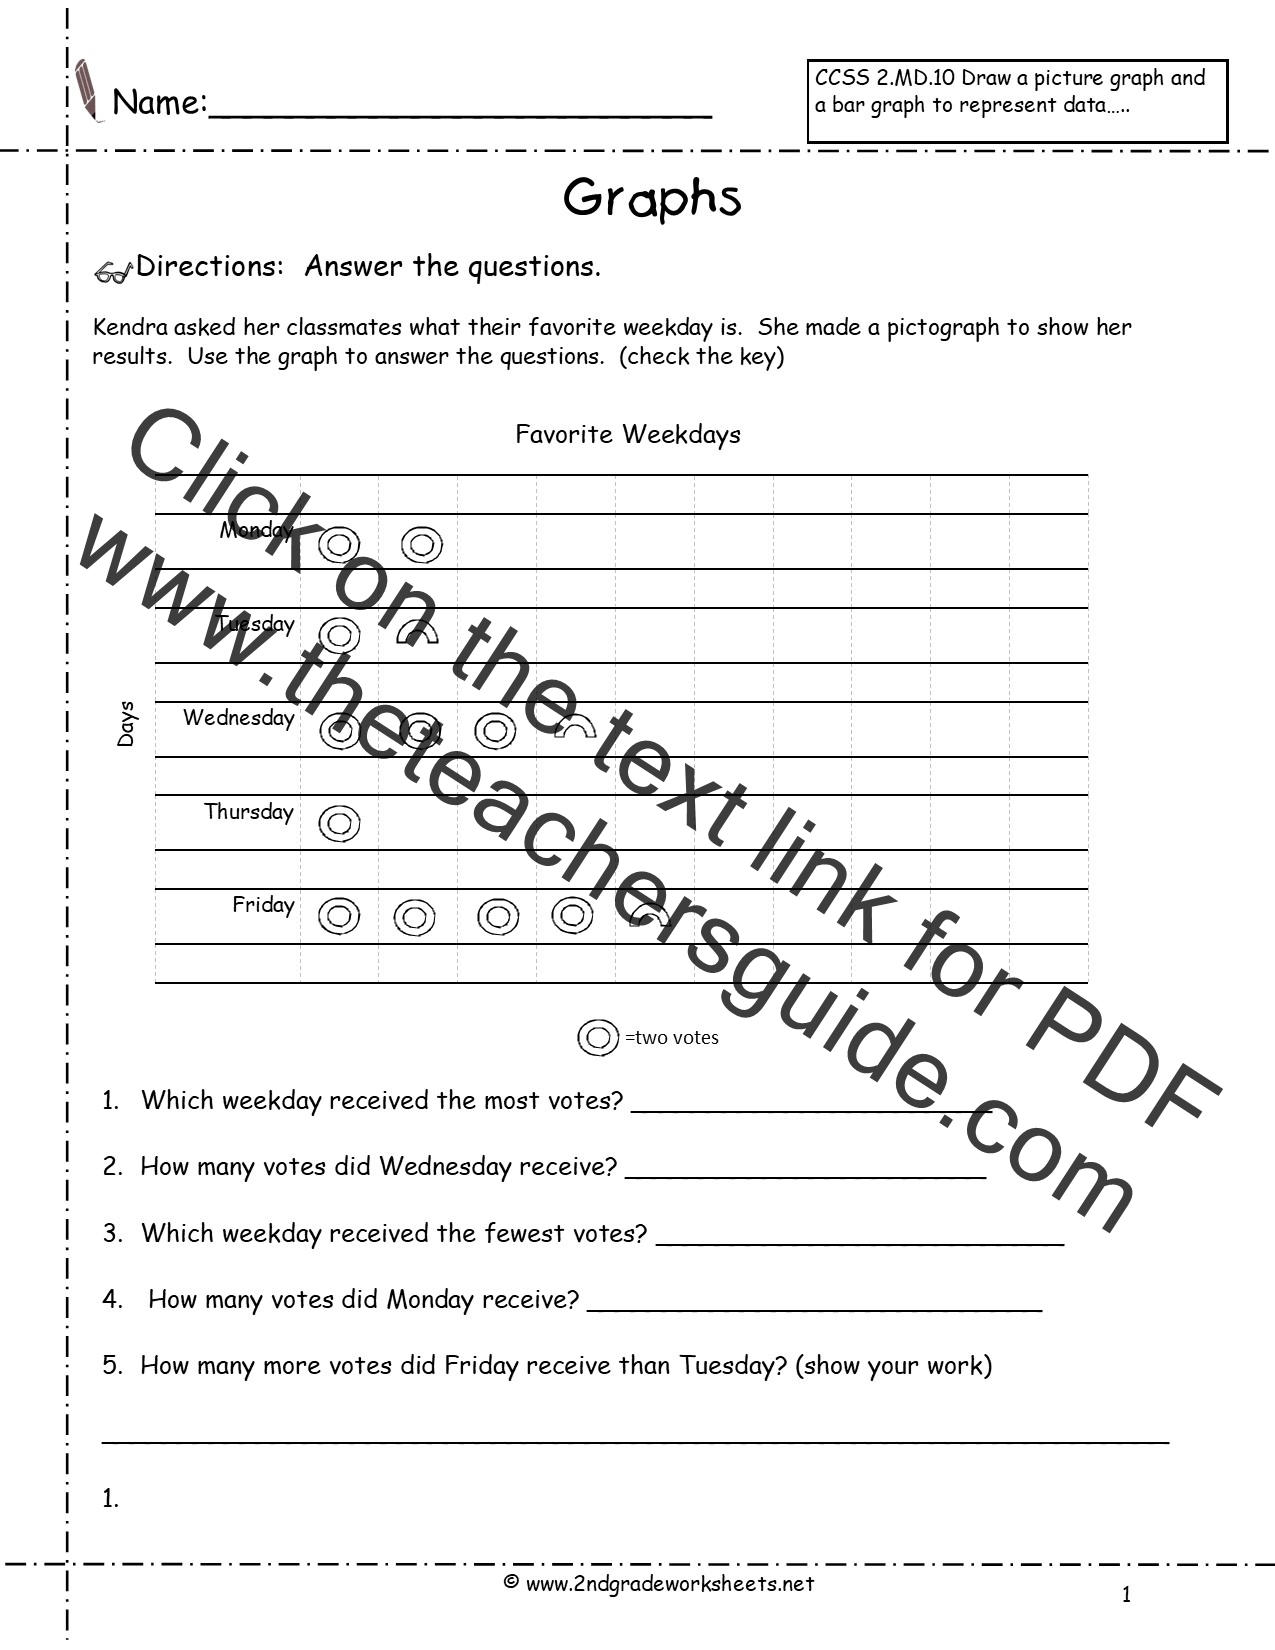 Reading and Creating Pictographs Worksheets from The Teacher's Guide